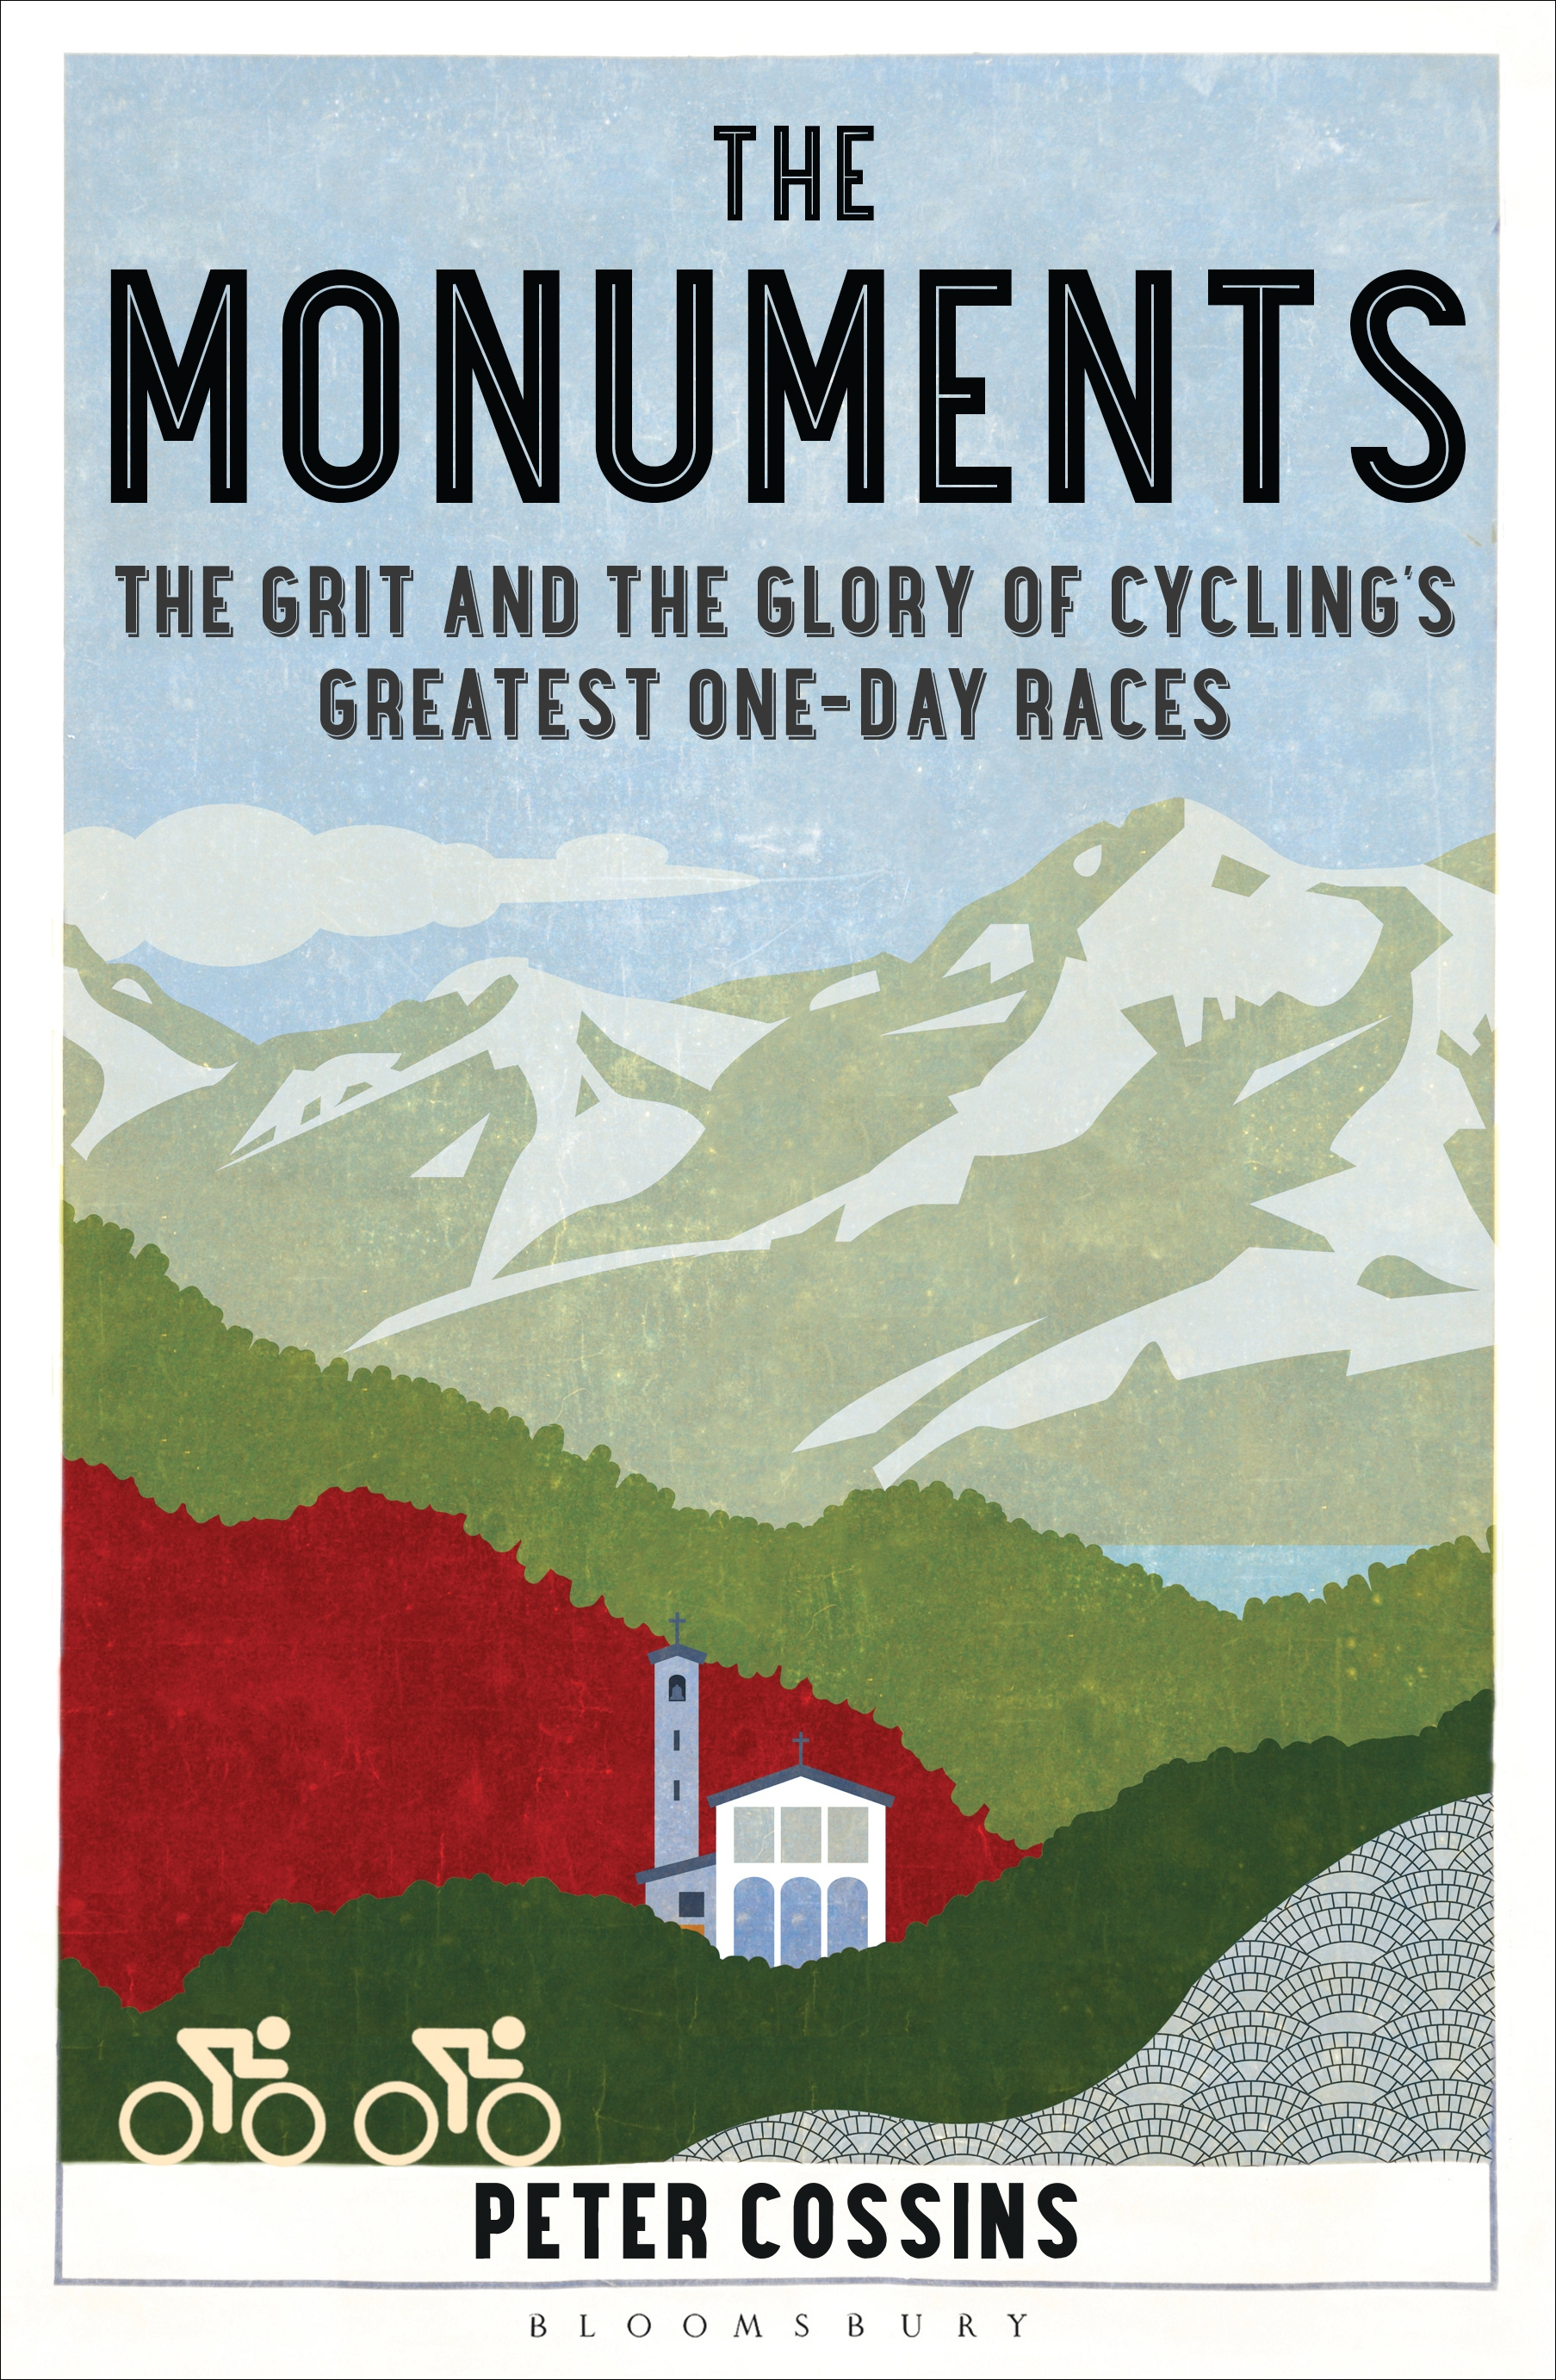 The Monuments The Grit and the Glory of Cycling?s Greatest One-day Races